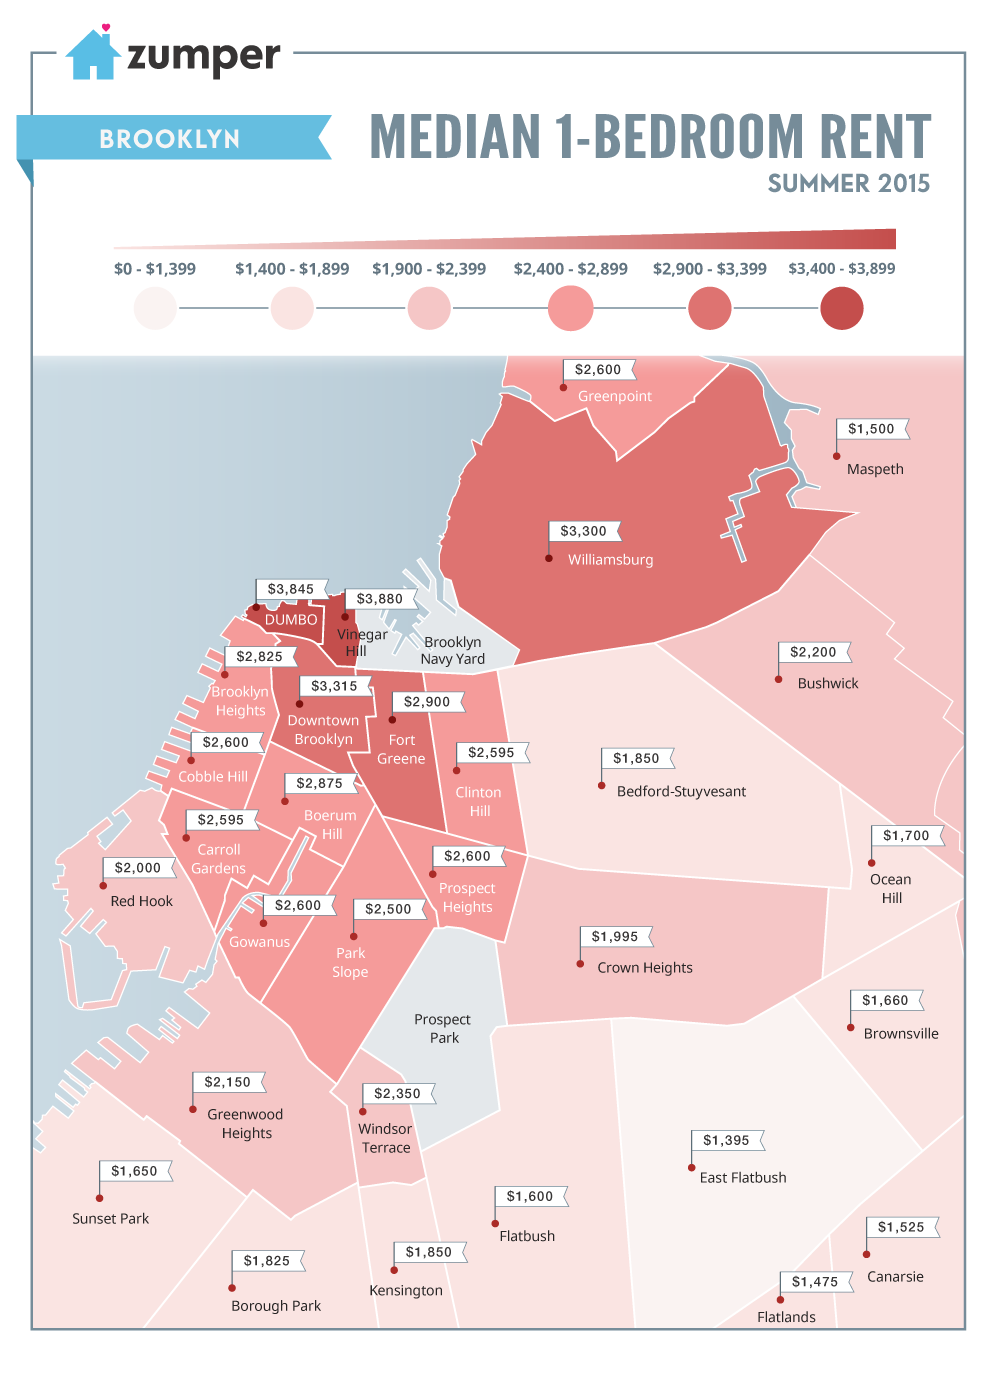 The Cheapest And Most Expensive NYC Neighborhoods To Rent